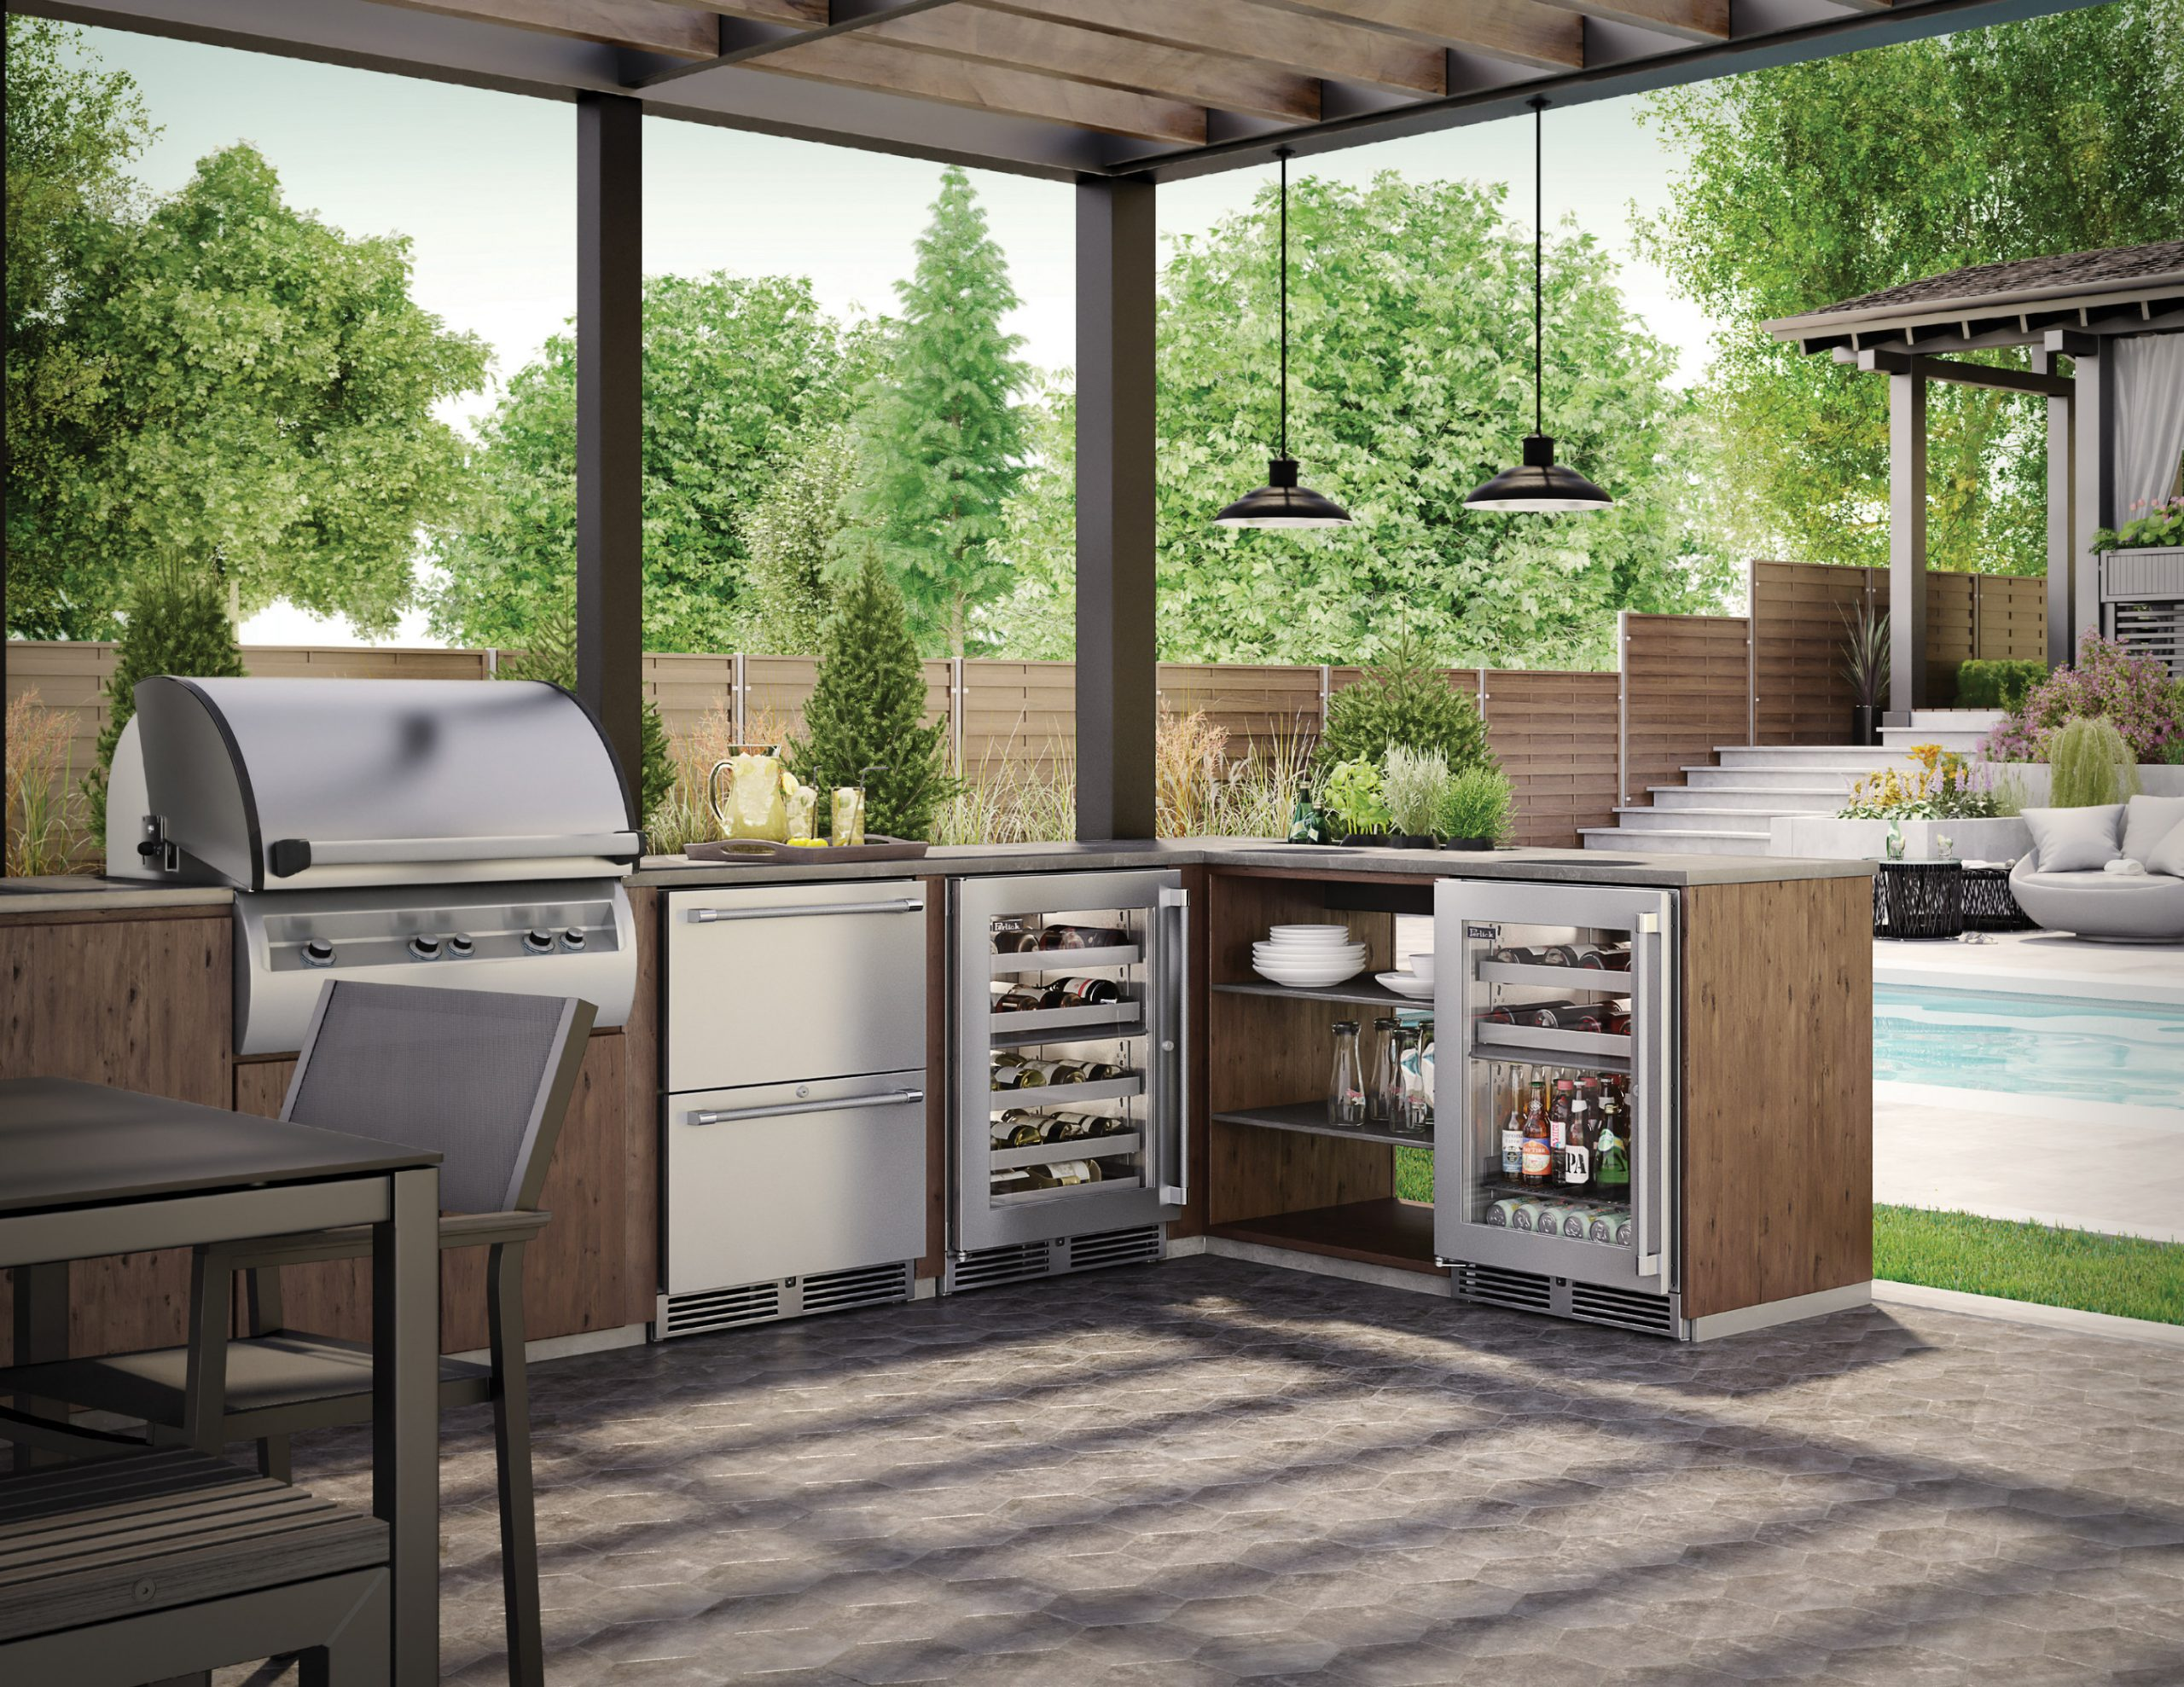 Make your backyard your summer vacation destination with Perlick.